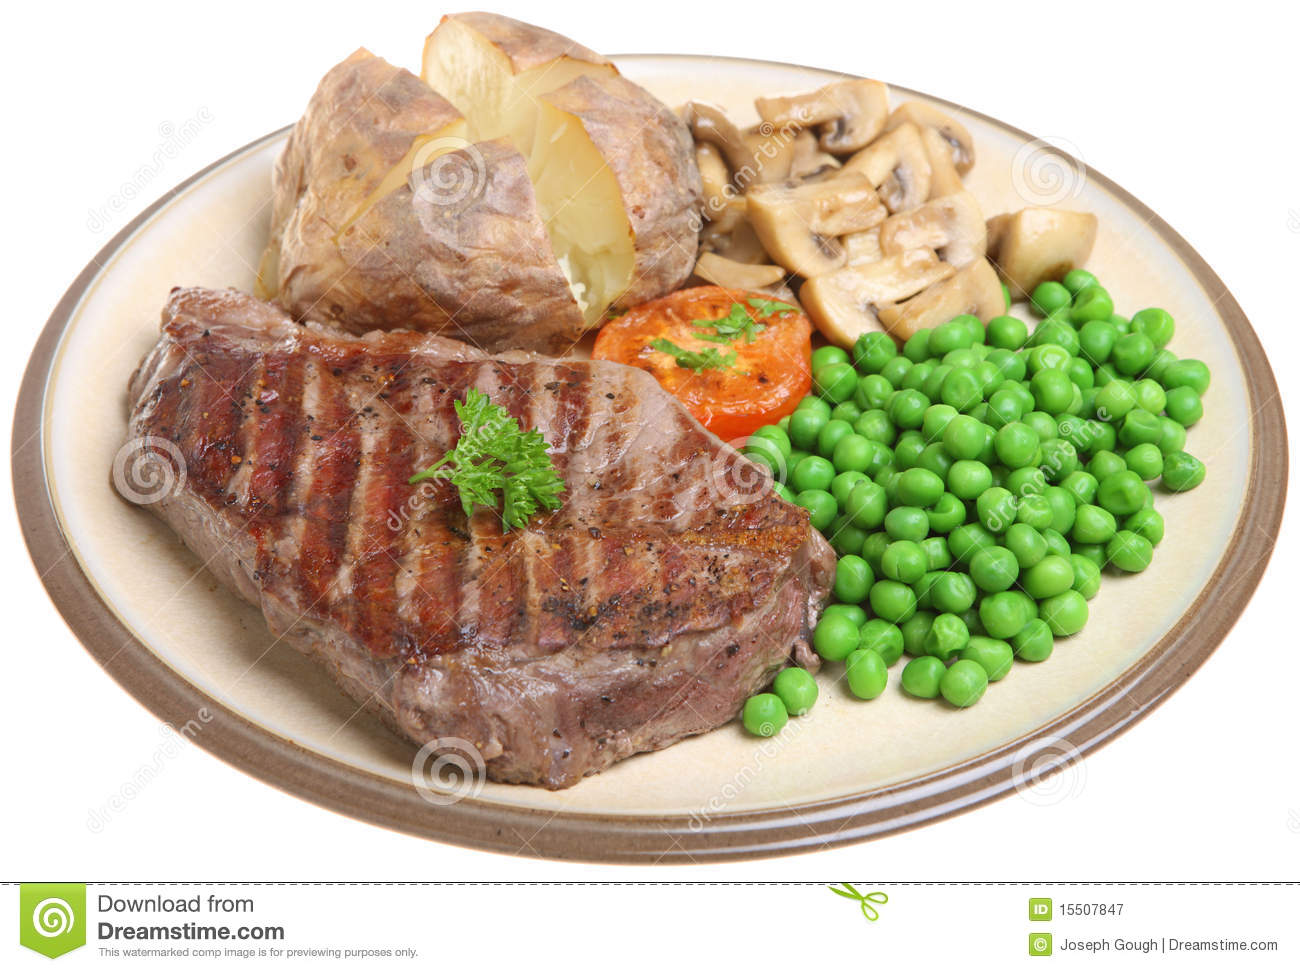 Steak Dinner Clipart Sirloin Steak Dinner